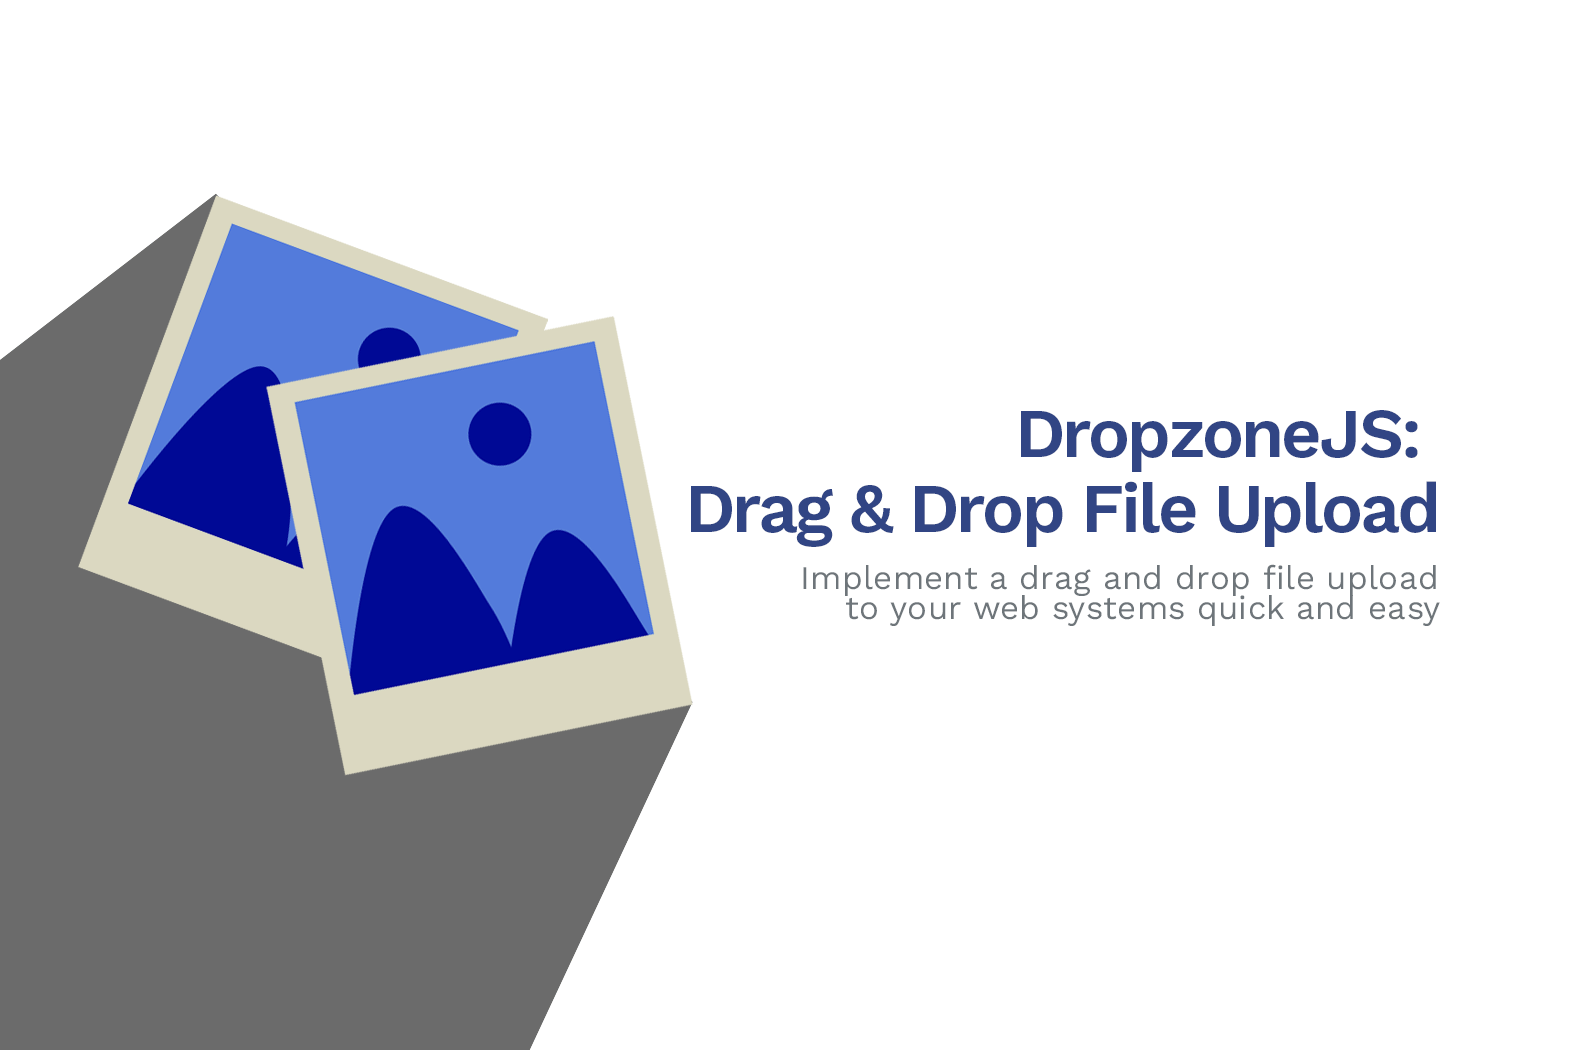 How to use Dropzone.js with PHP to Upload Images Only